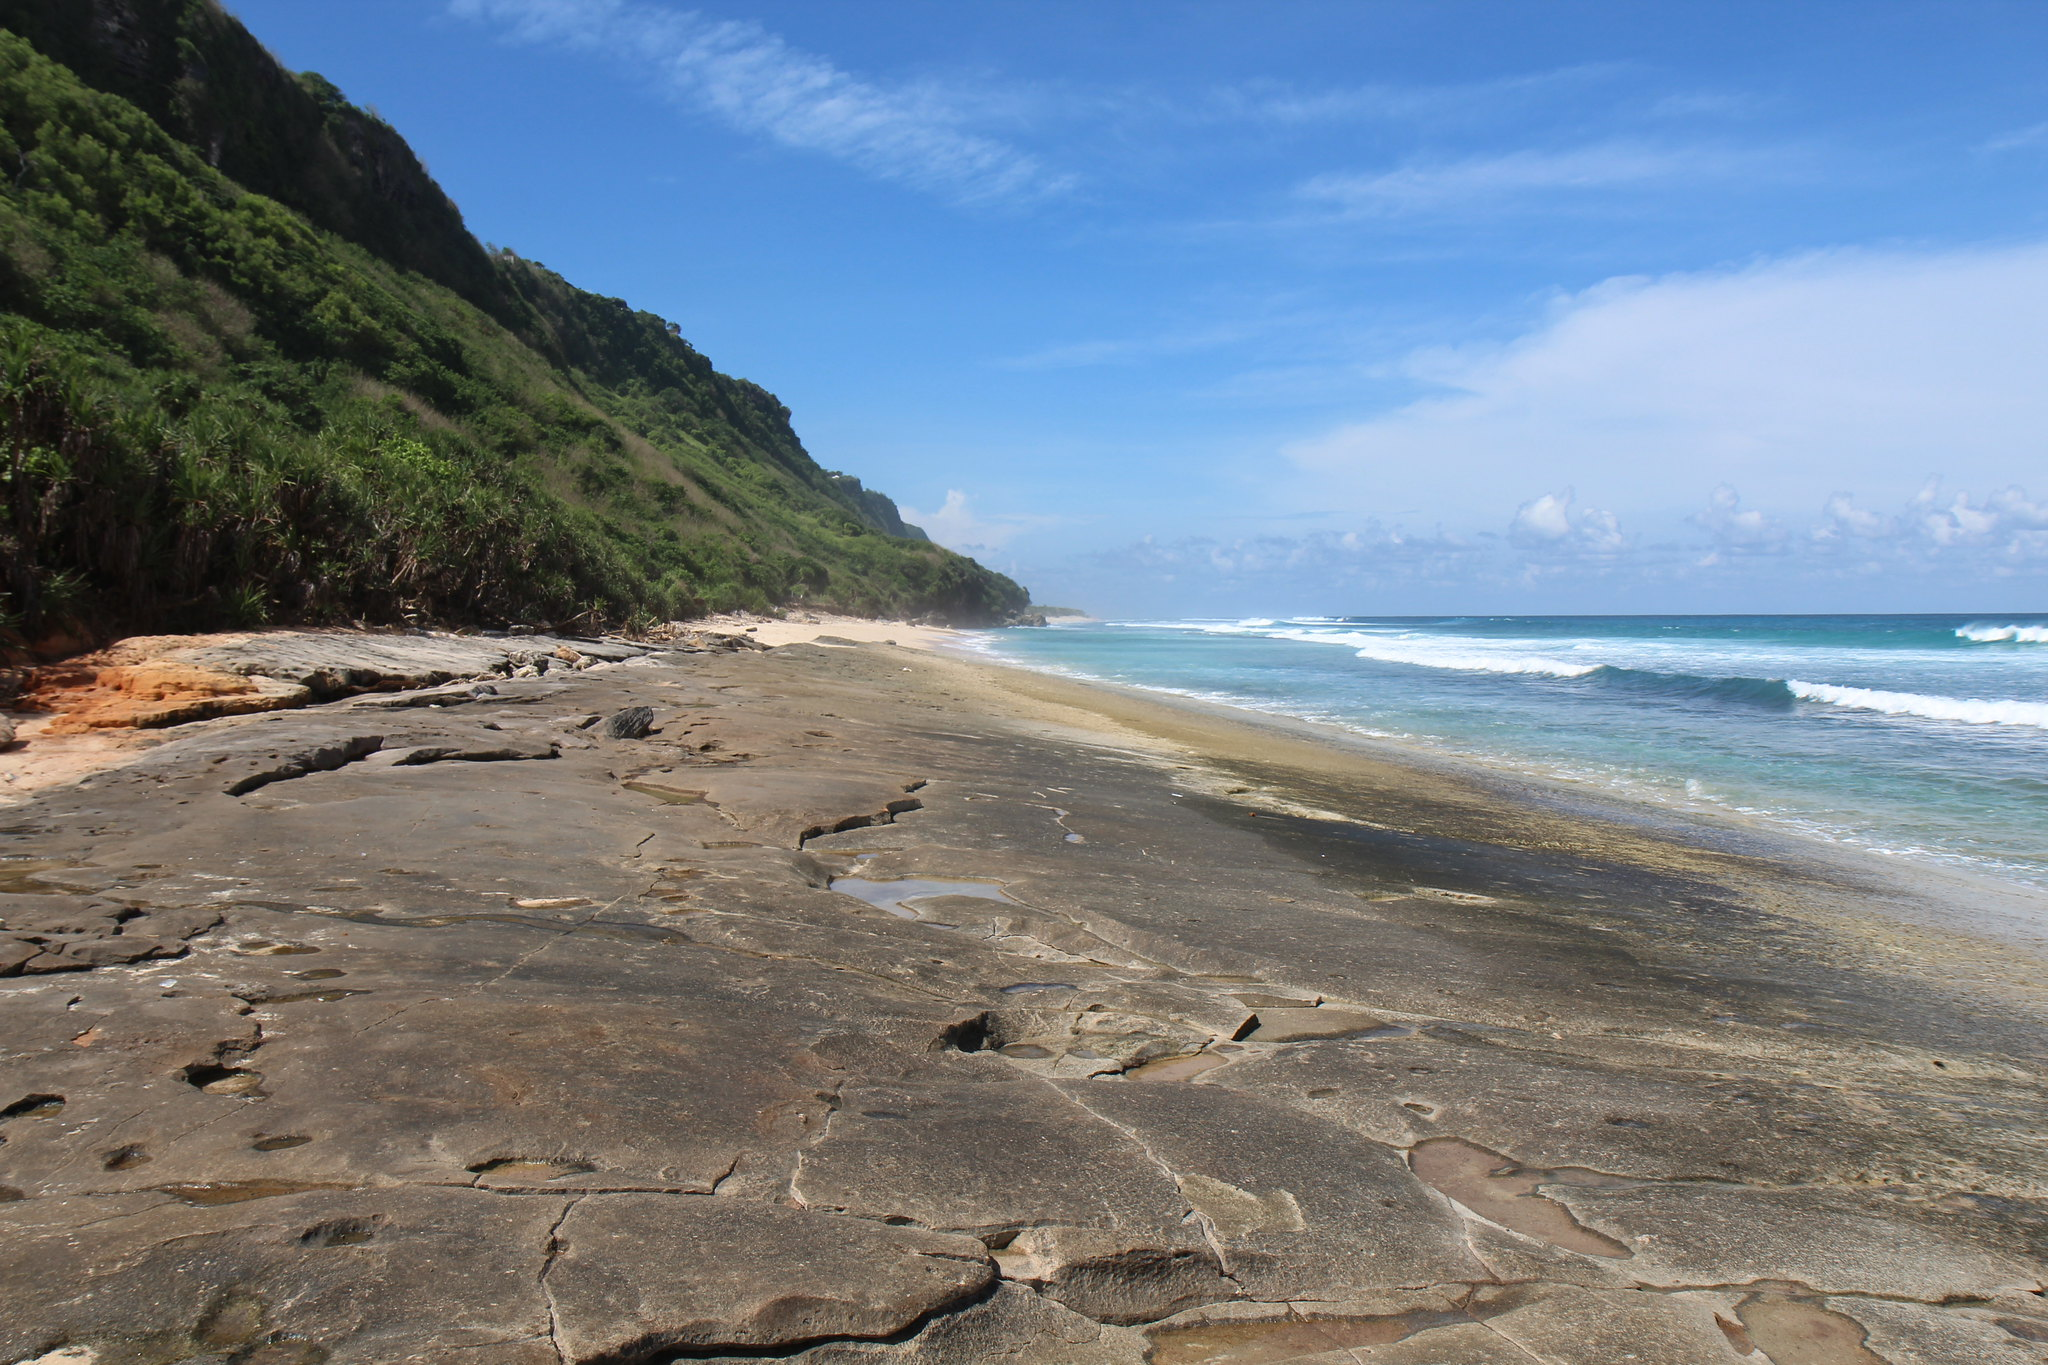 picturesque beaches of Bali